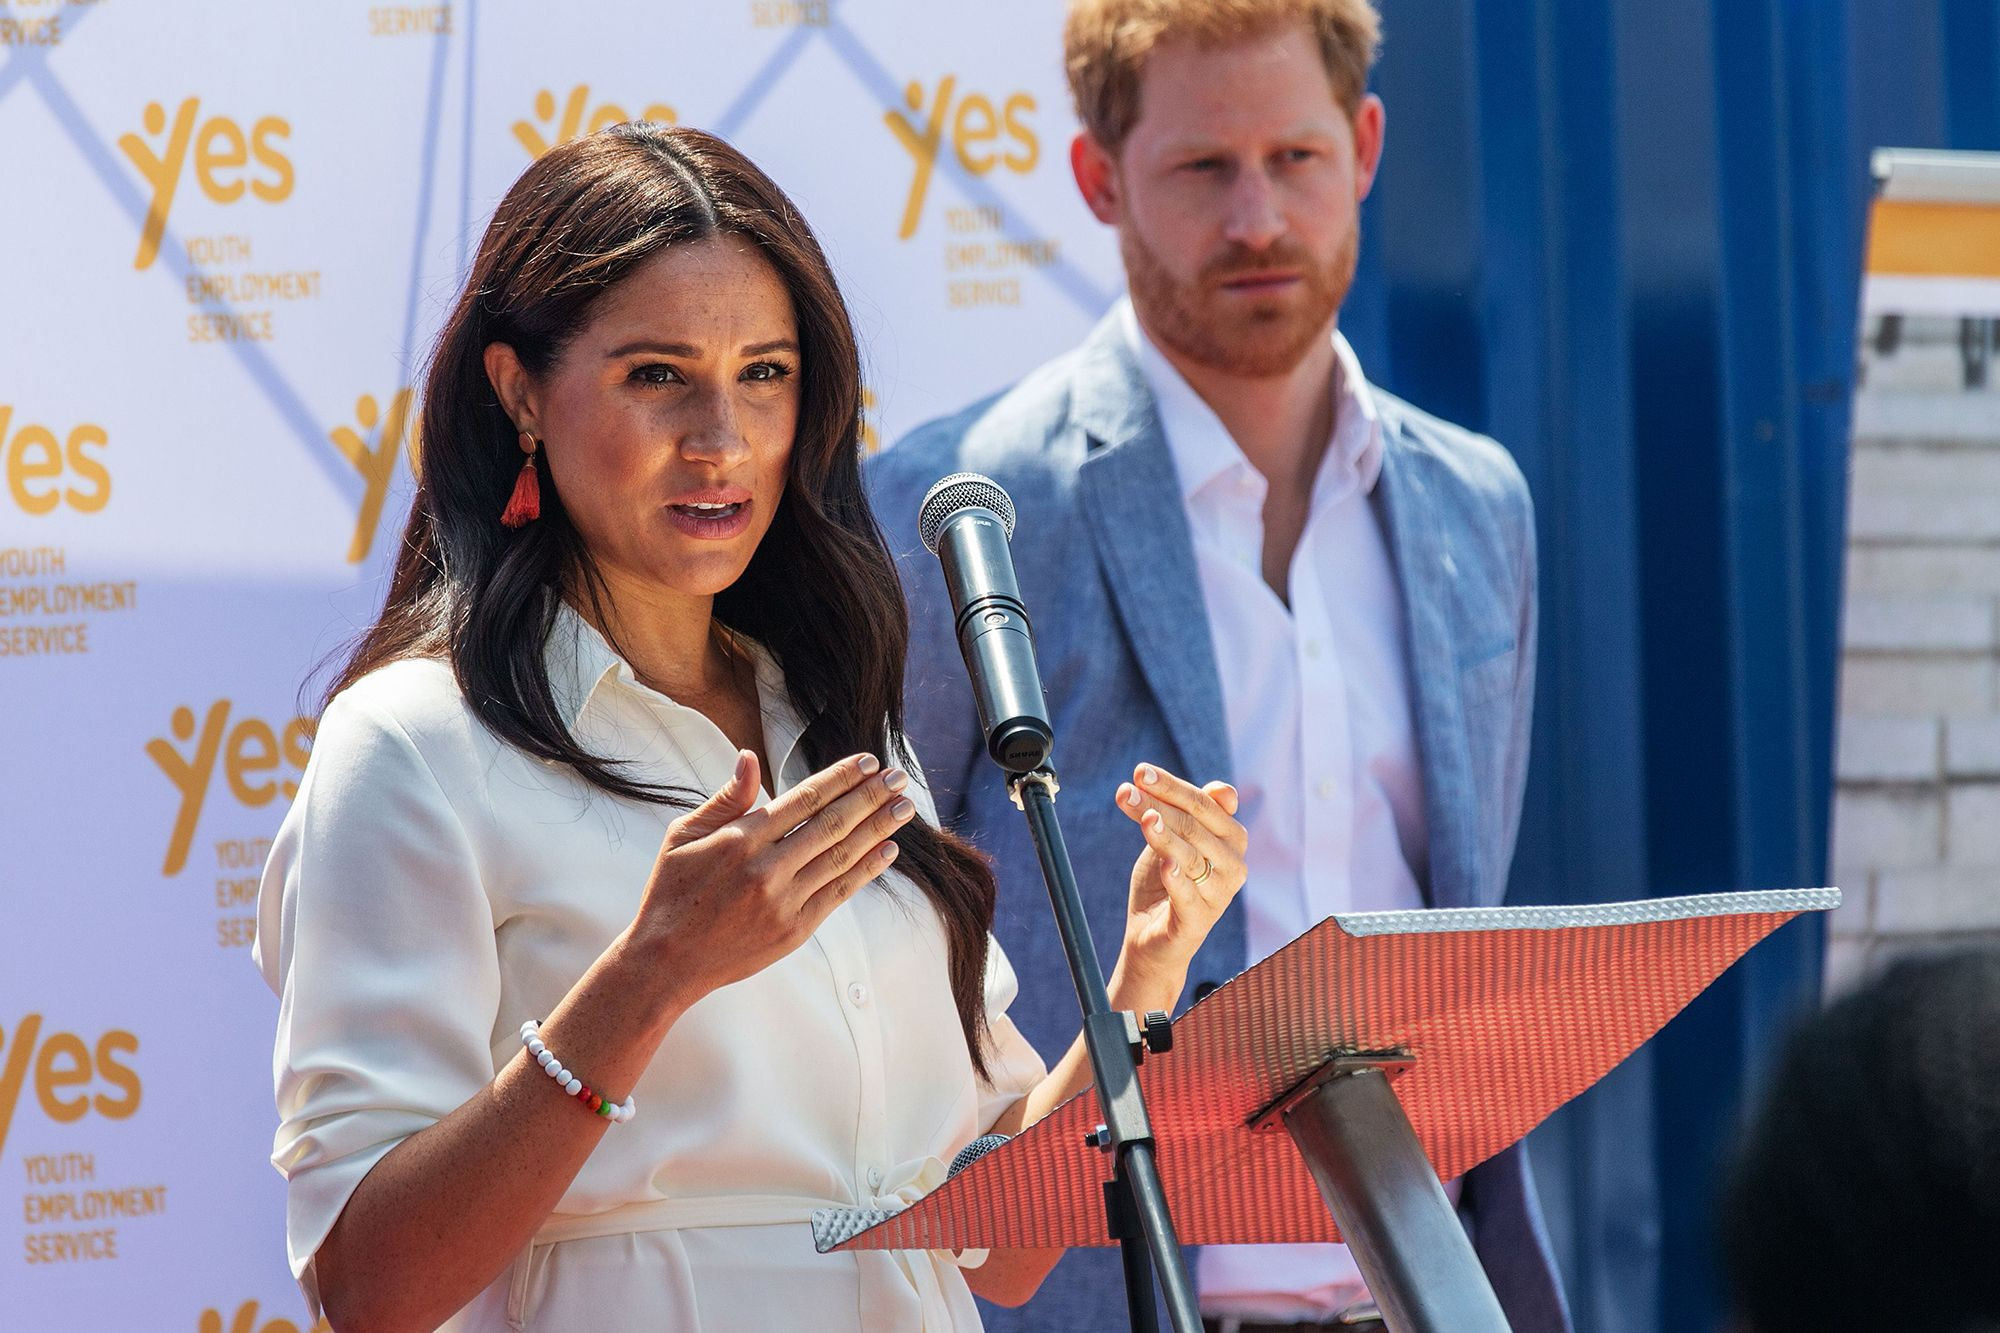 Prince Charles 'foresaw considerable problems' with Meghan, author claims